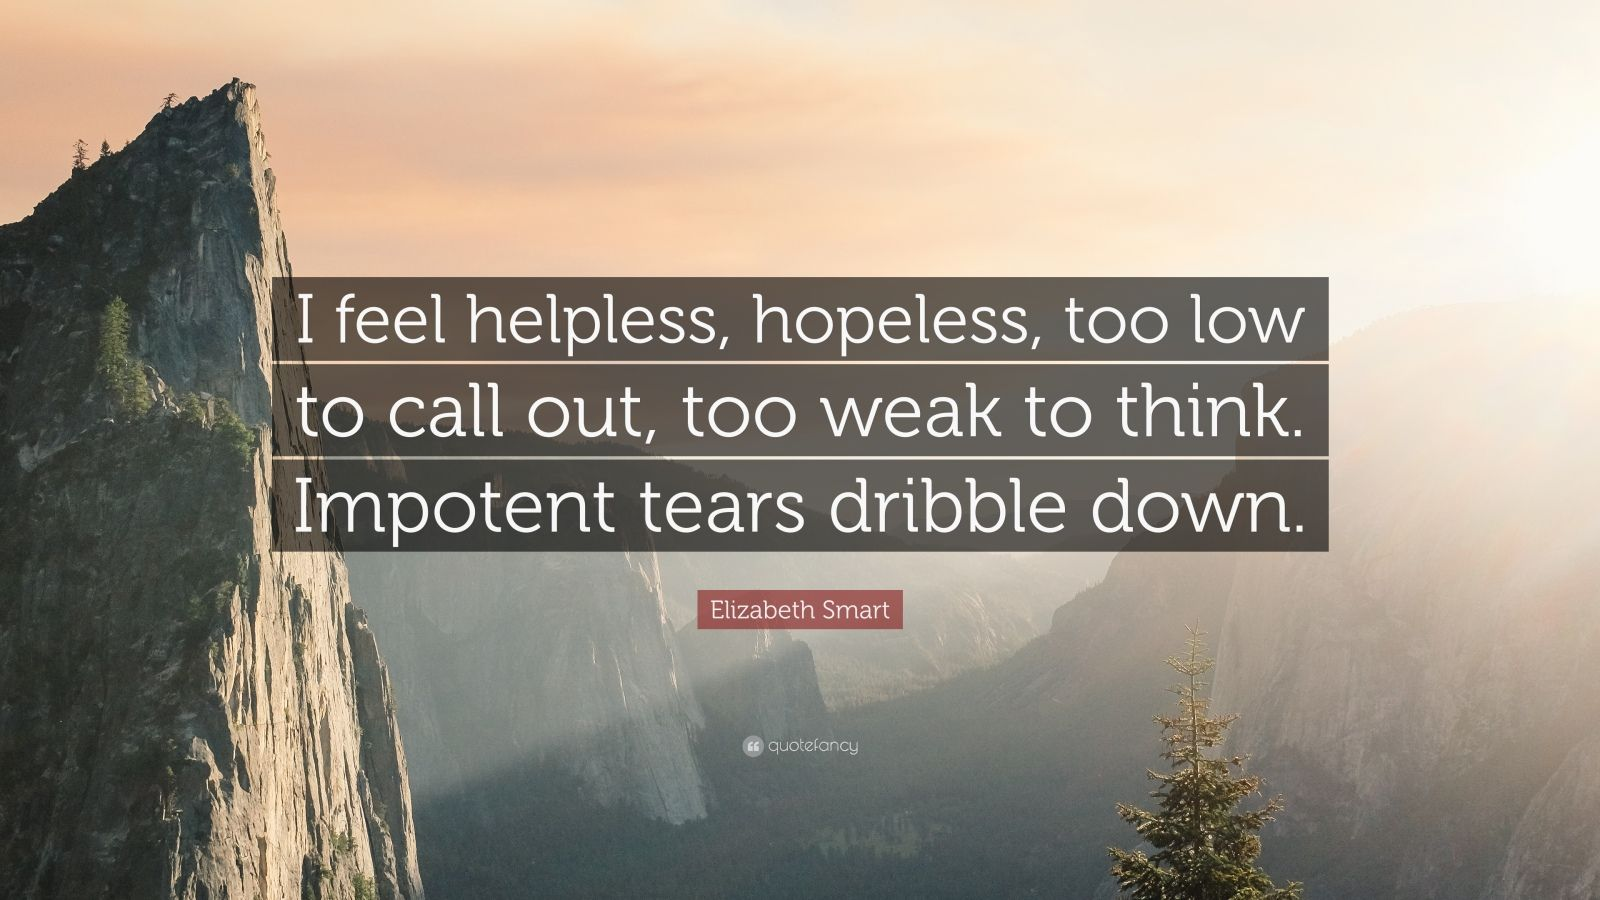 feelings of helplessness Helplessness have you ever felt like just giving up you know that helpless feeling you getwhen you believe that no matter what you doit just does.